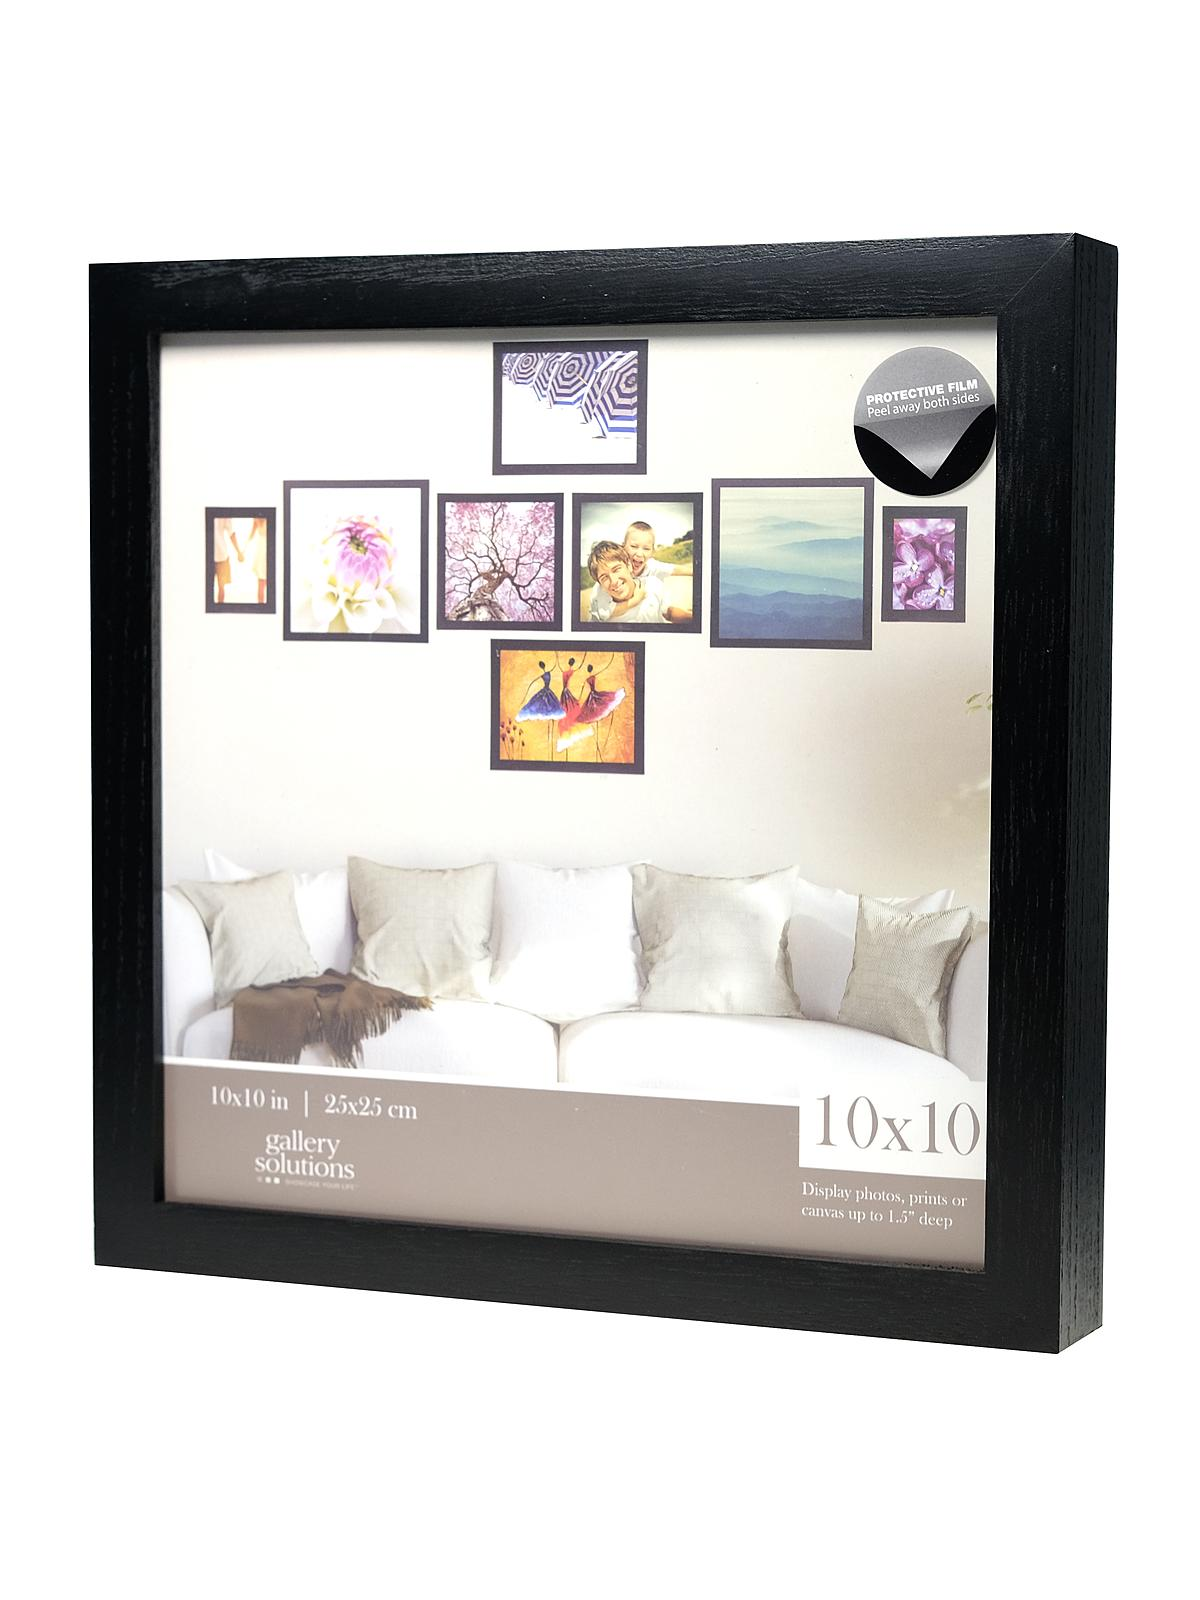 Gallery Solutions Wood Gallery Frames